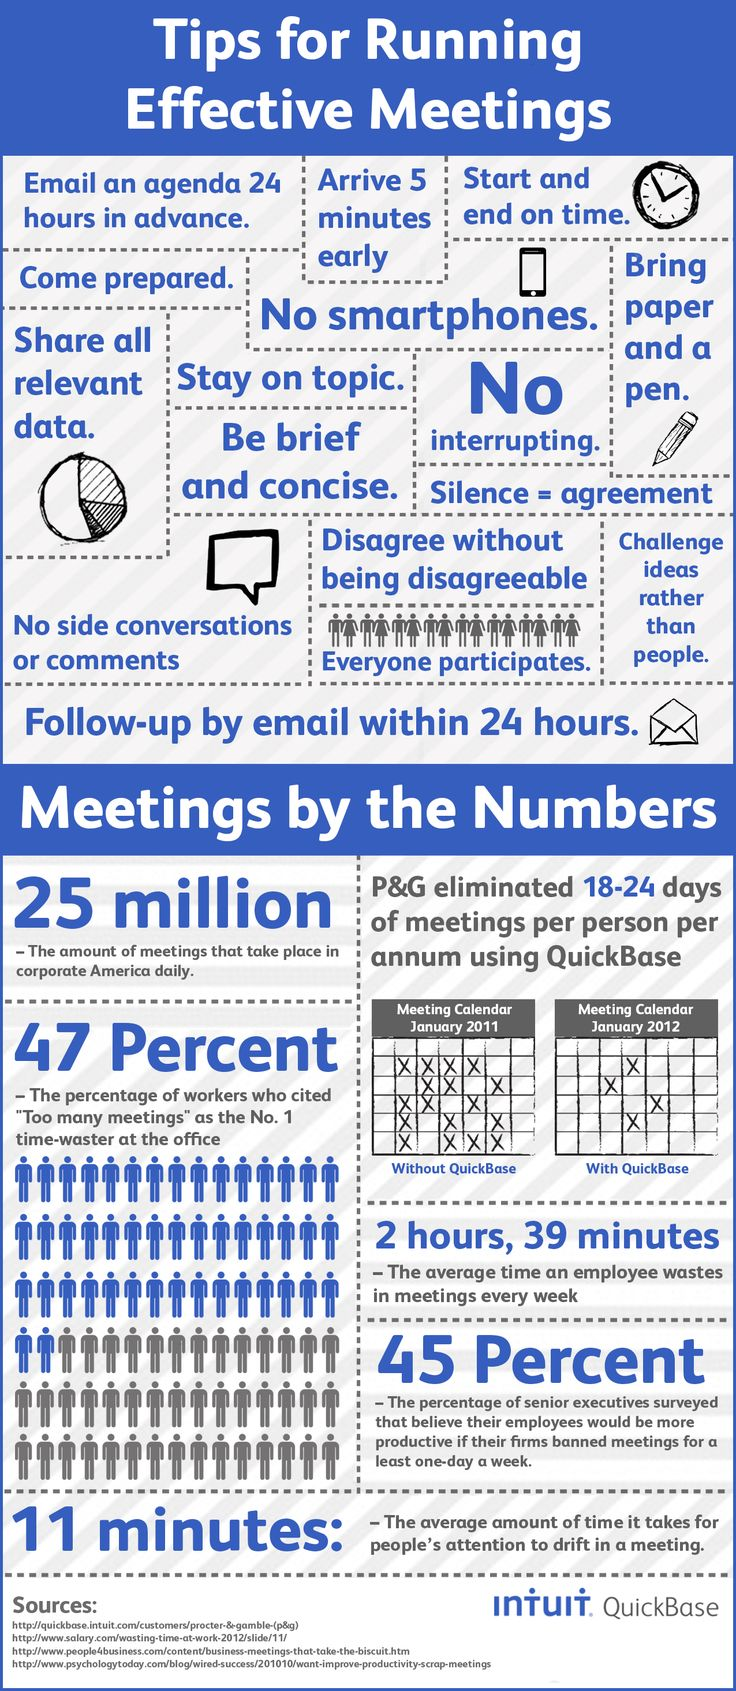 Meetings are typically not something I look forward to. In fact, I do whatever I can to avoid them. But sometimes you just have to face the music and have one. So what could I do to make these meetings as effective as possible? What are some handy tips that would make meetings take a bit less time and achieve a bit more?